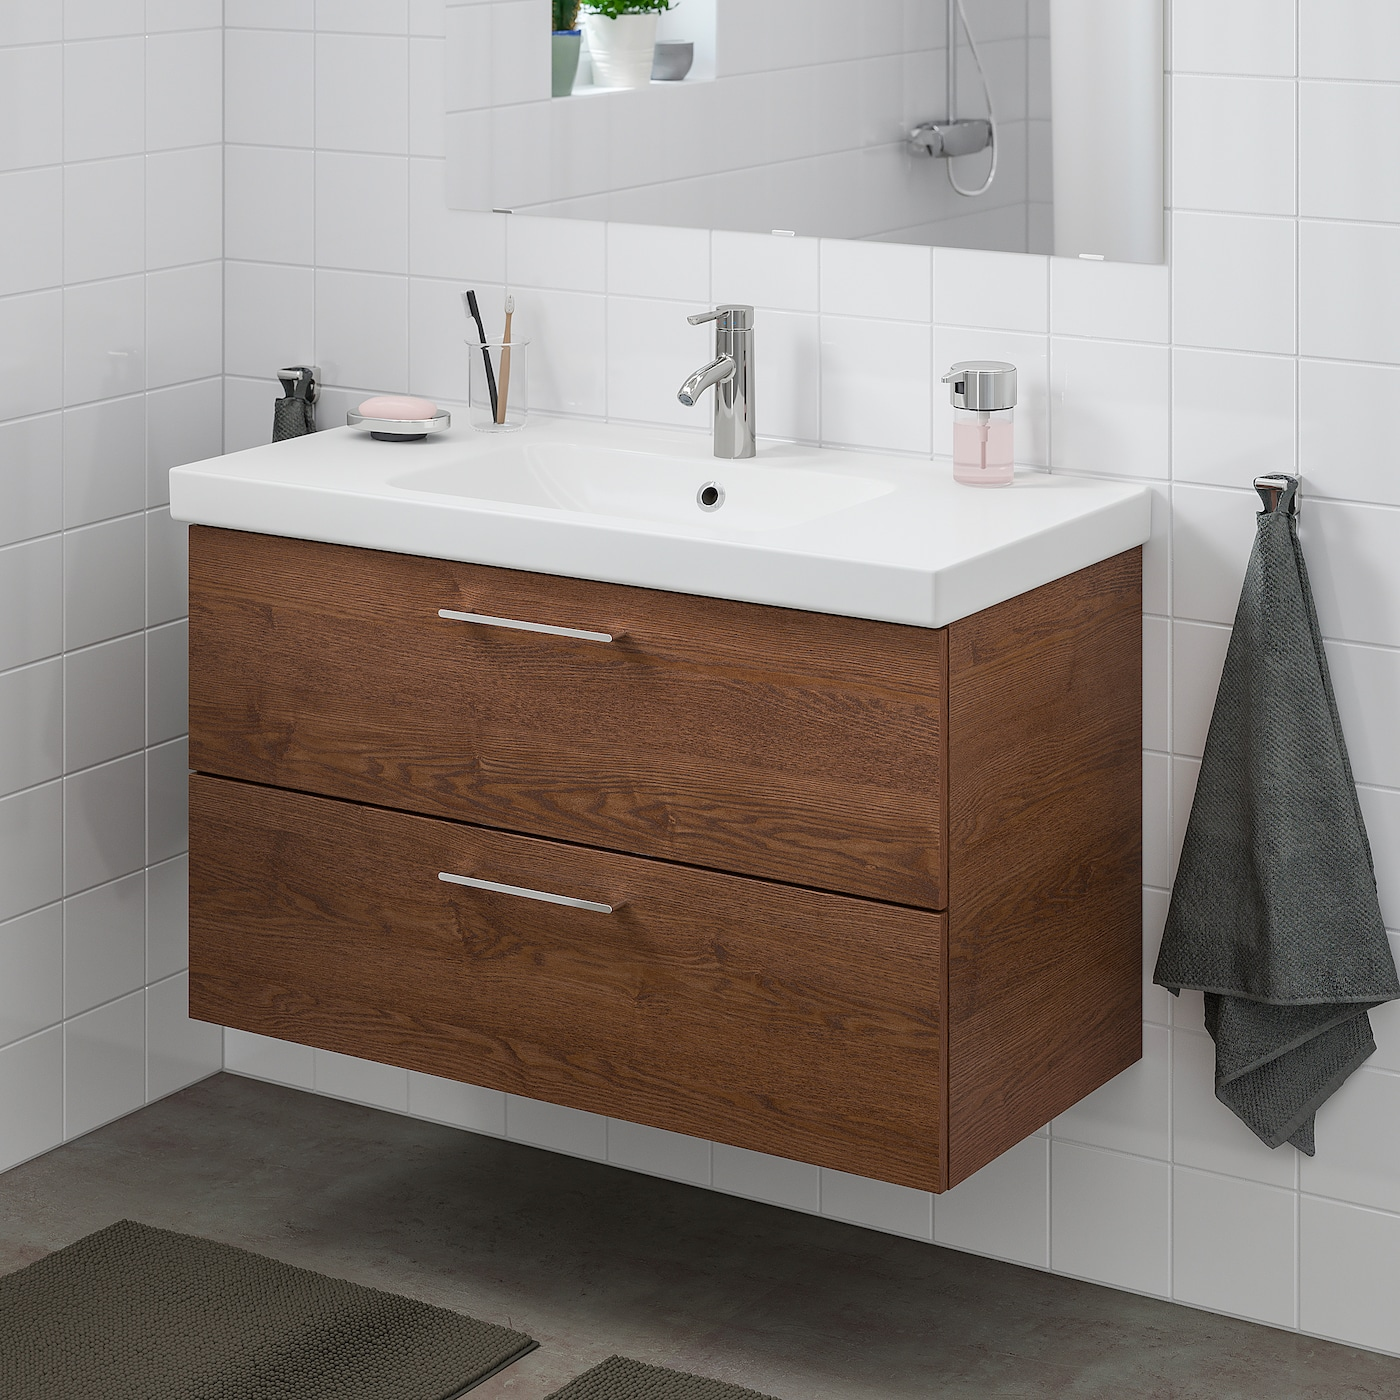 Godmorgon Odensvik Sink Cabinet With 2 Drawers Brown Stained Ash Effect Dalskar Faucet Ikea